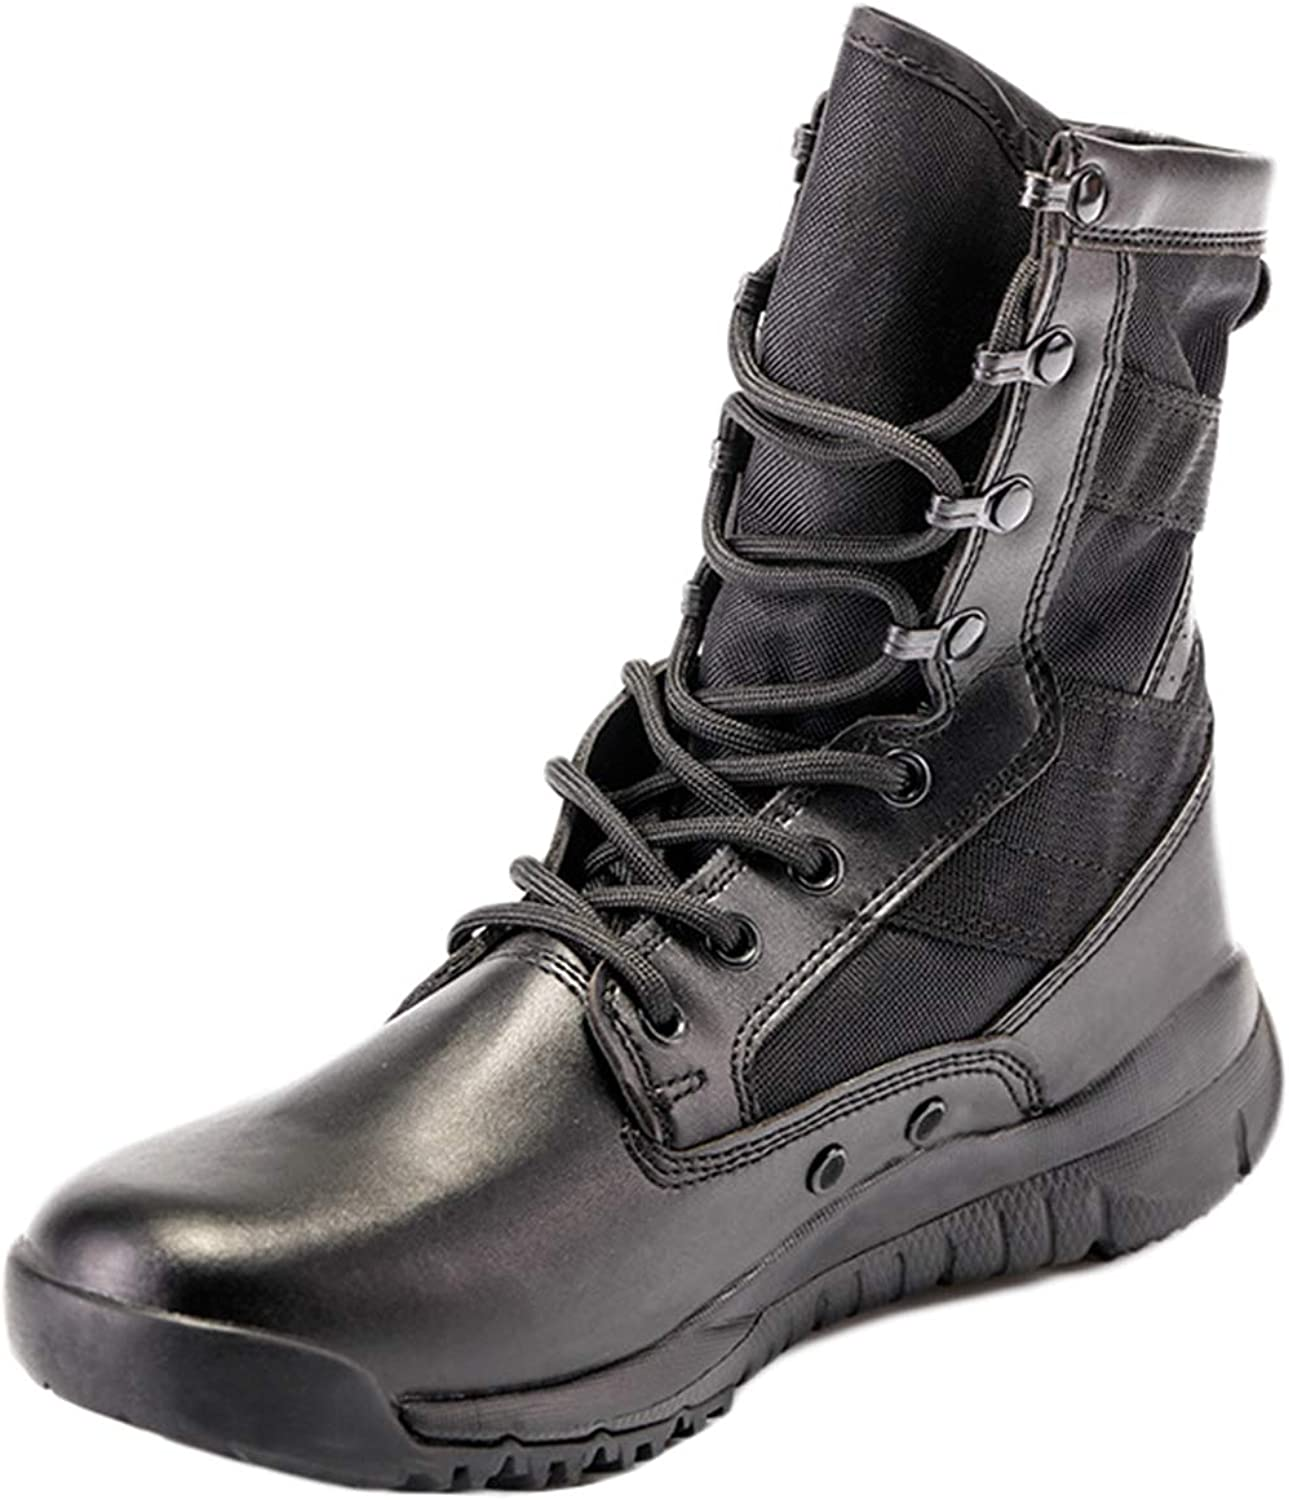 MERRYHE Military Boots Tactical Boots Desert Combat Training Boot Men Outdoor Lightweight Breathable Shock Absorption High-Top Black Sports shoes